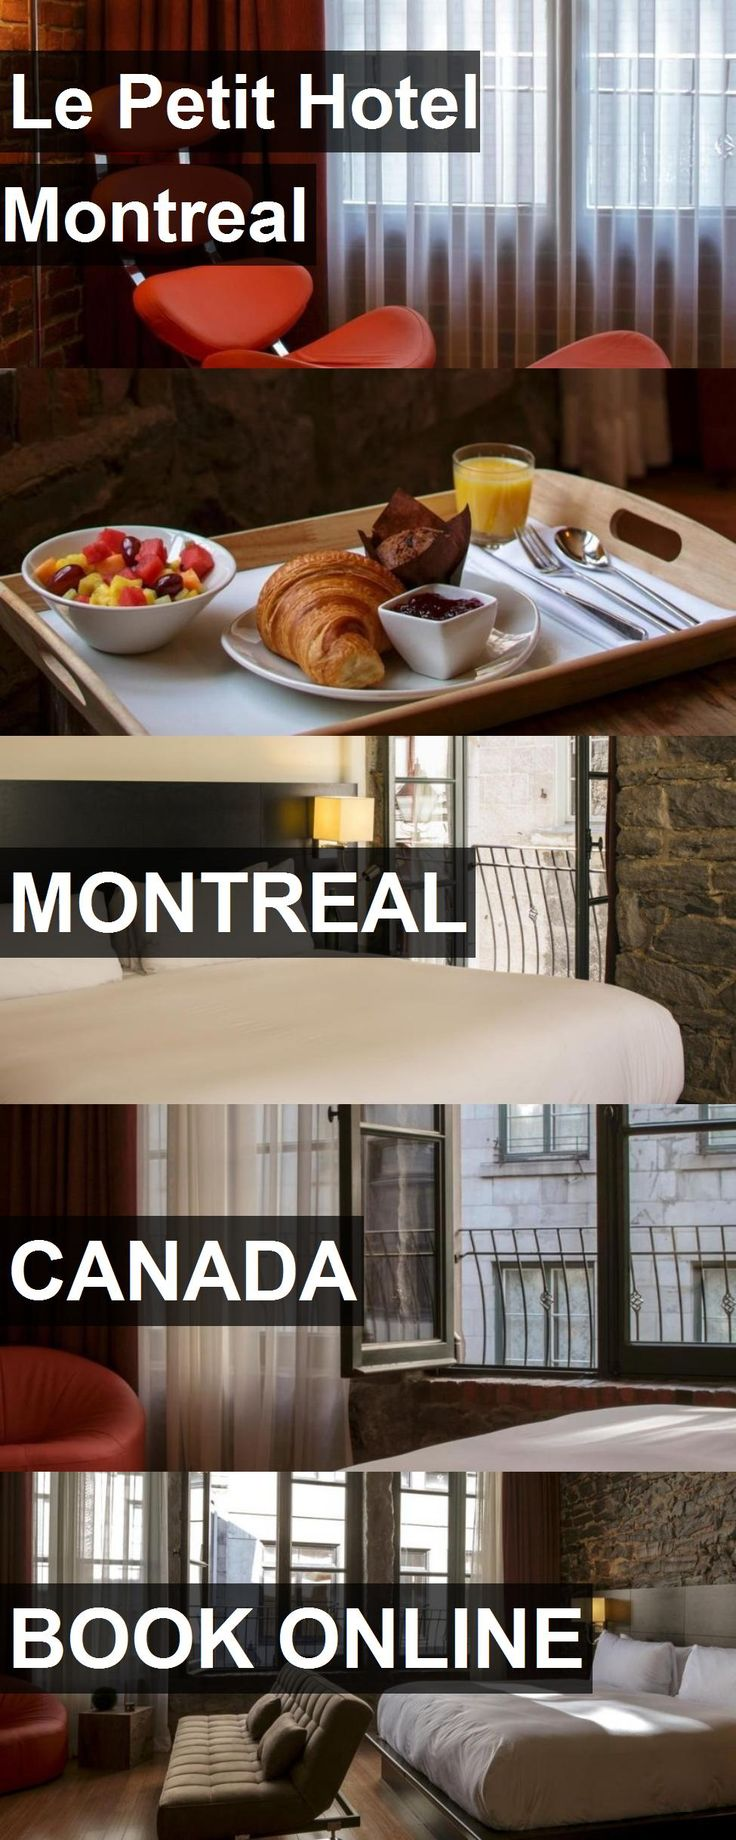 Le Petit Hotel Montreal in Montreal, Canada. For more information, photos, reviews and best prices please follow the link. #Canada #Montreal #travel #vacation #hotel